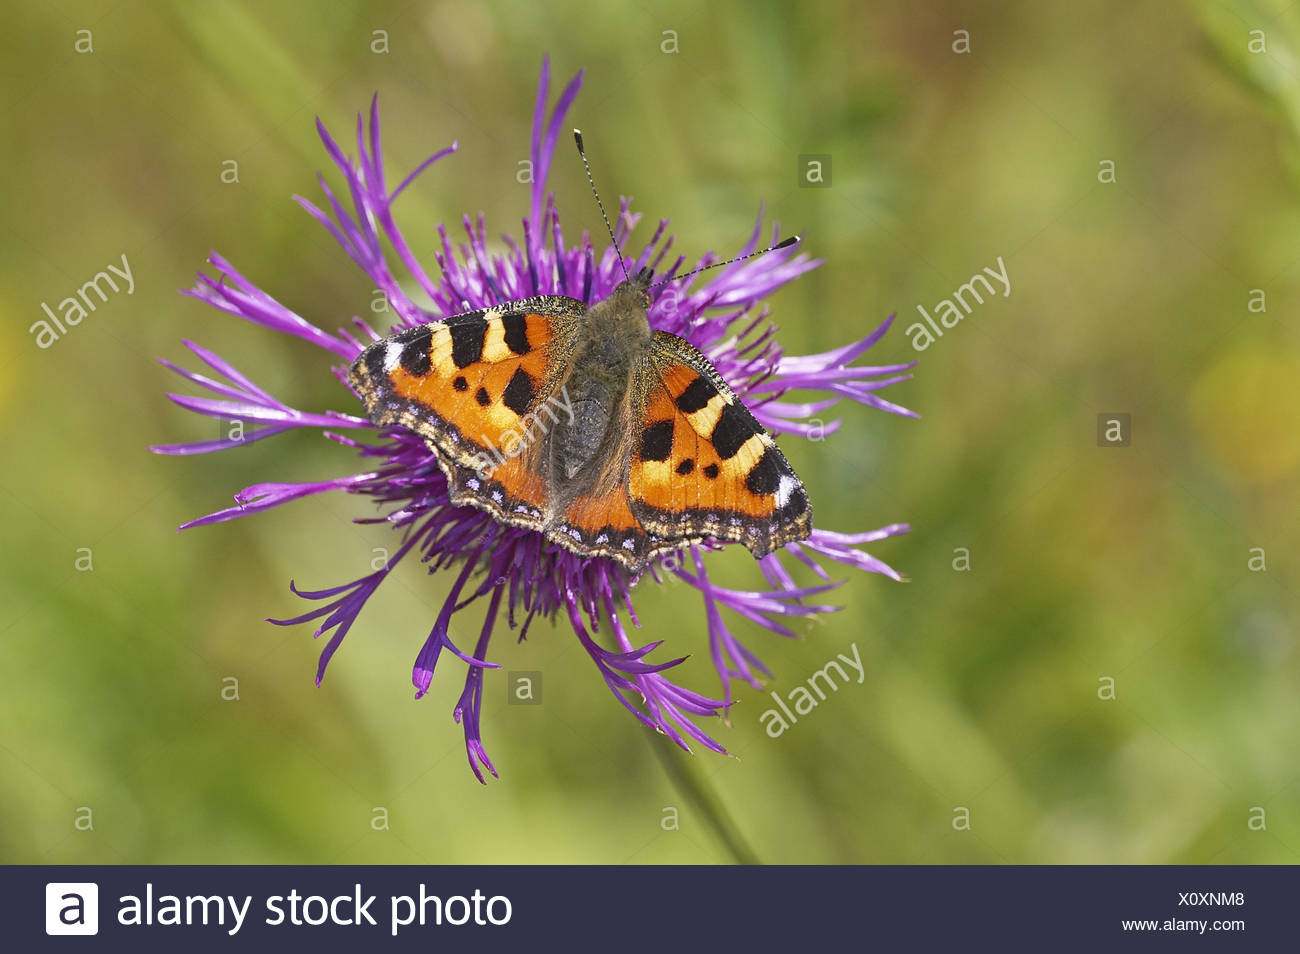 Small Totoiseshell Aglais urticae nectaring Greater Knapweed Centaurea scabiosa summer Gloucestershire wings colour butterflies - Stock Image